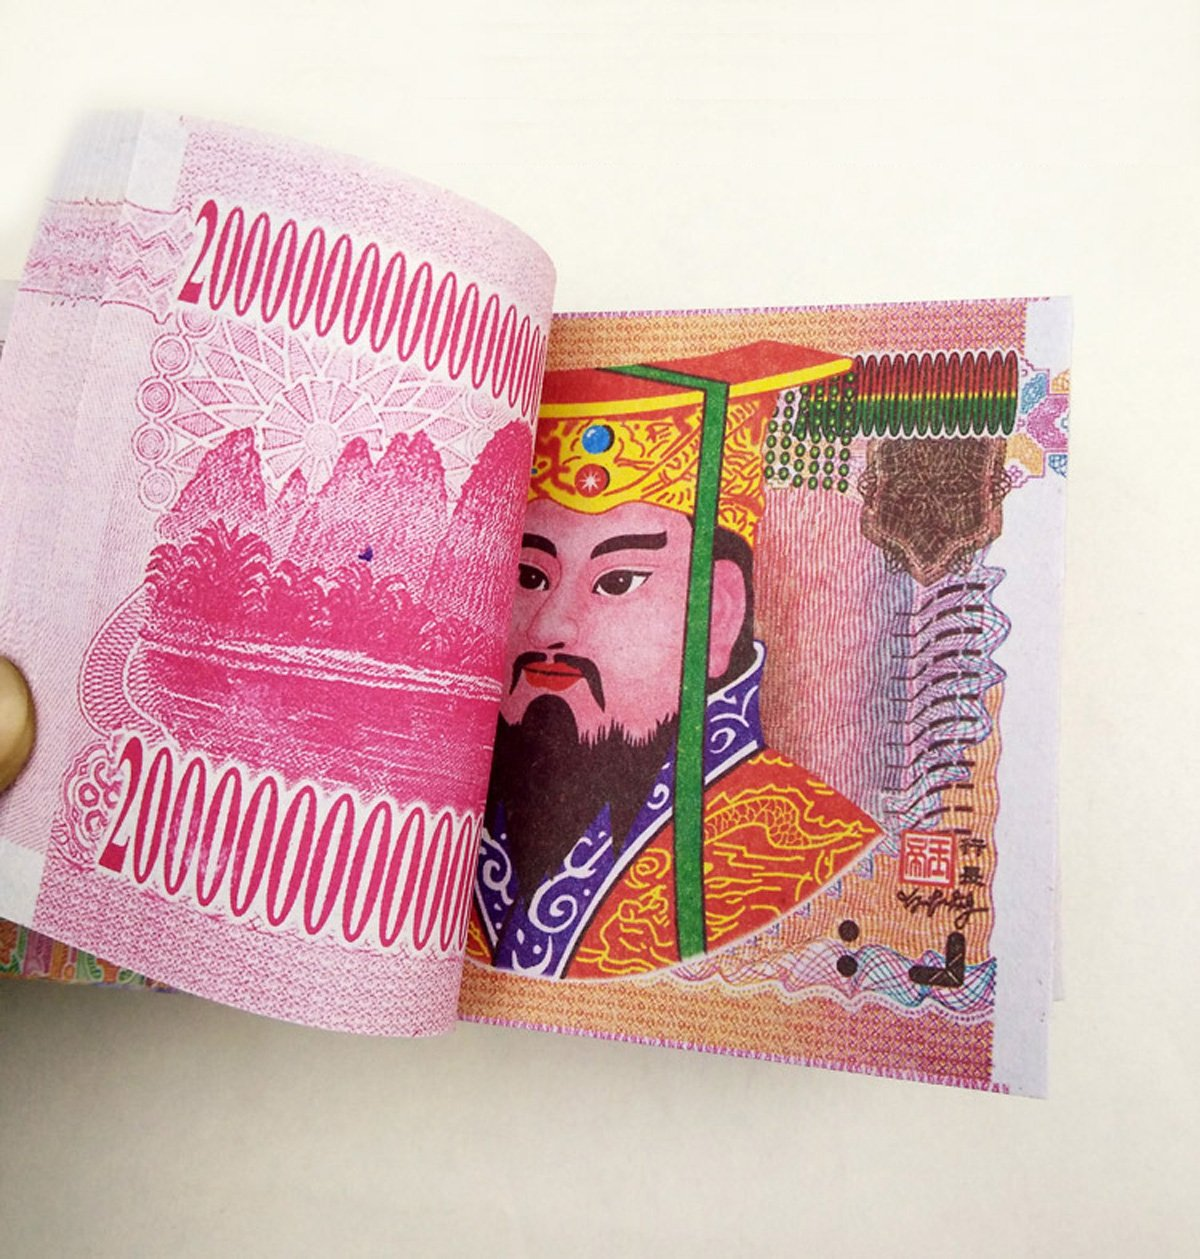 ZeeStar 300 Pcs Chinese Joss Paper Money Hell Bank Notes for Funerals The Qingming Festival and The Hungry Ghost Festival